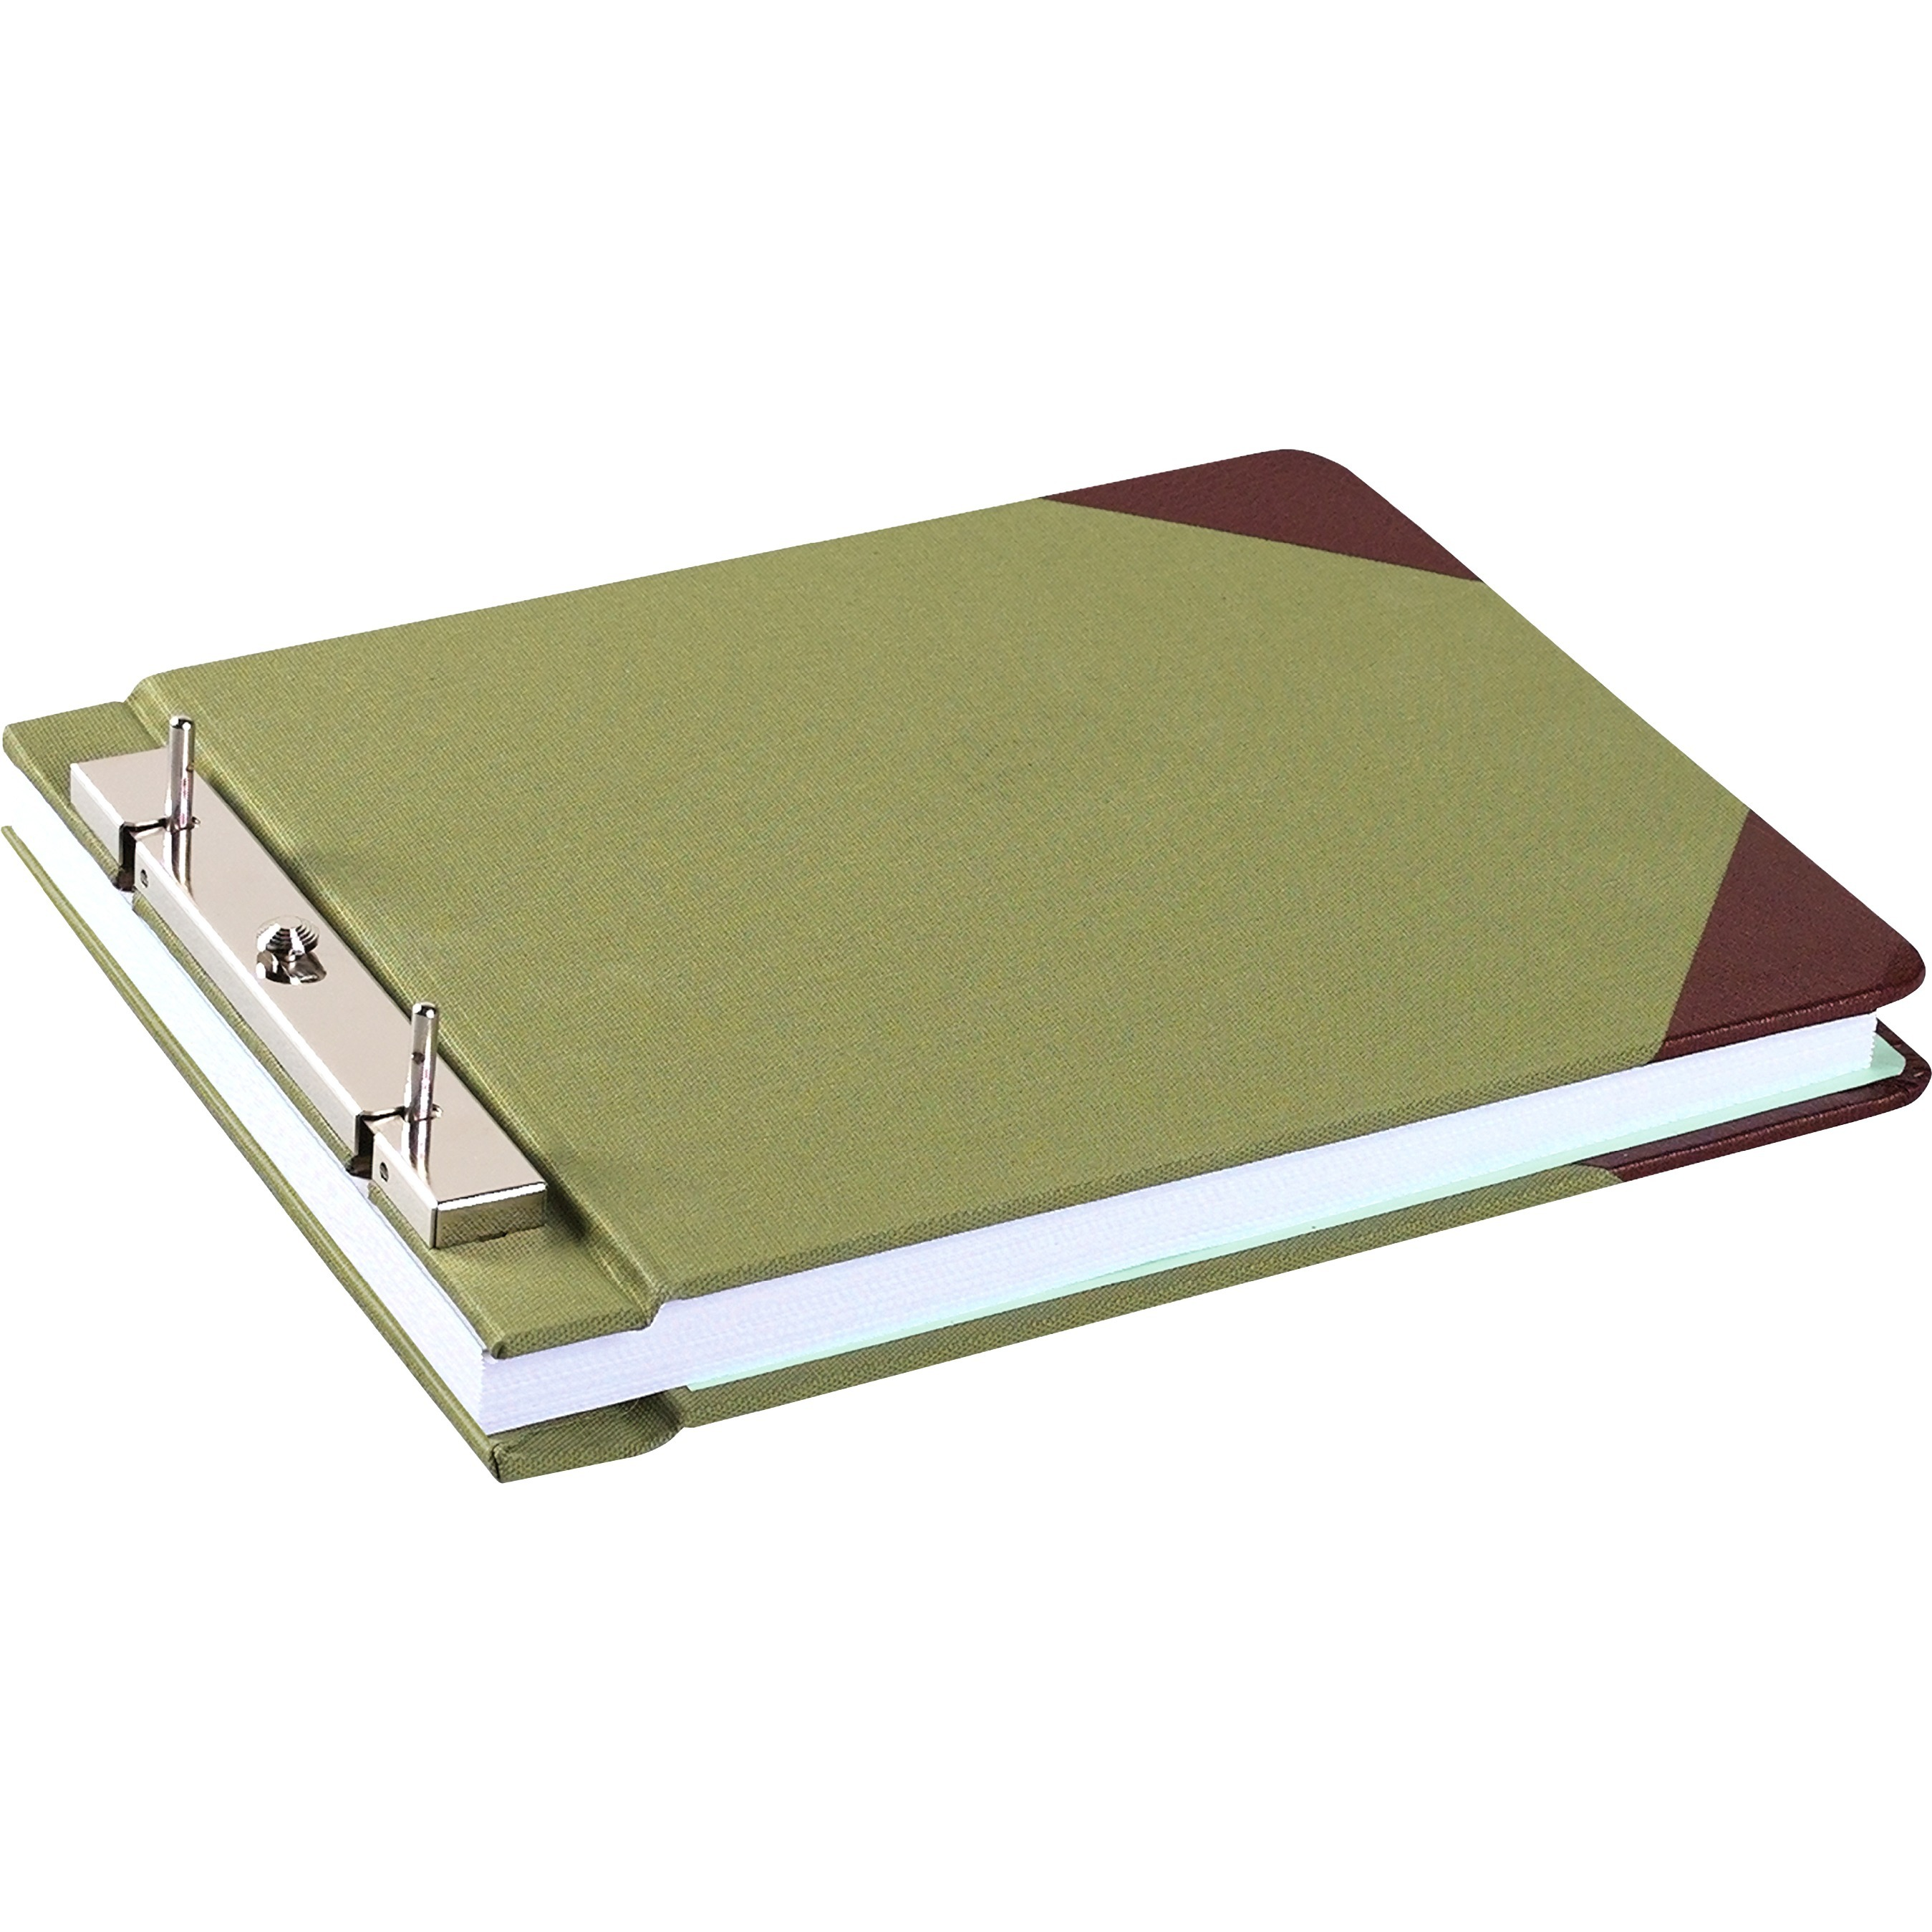 Wilson Jones, WLJ27827, Slotted Lock Post Binders, 1 / Each, Green